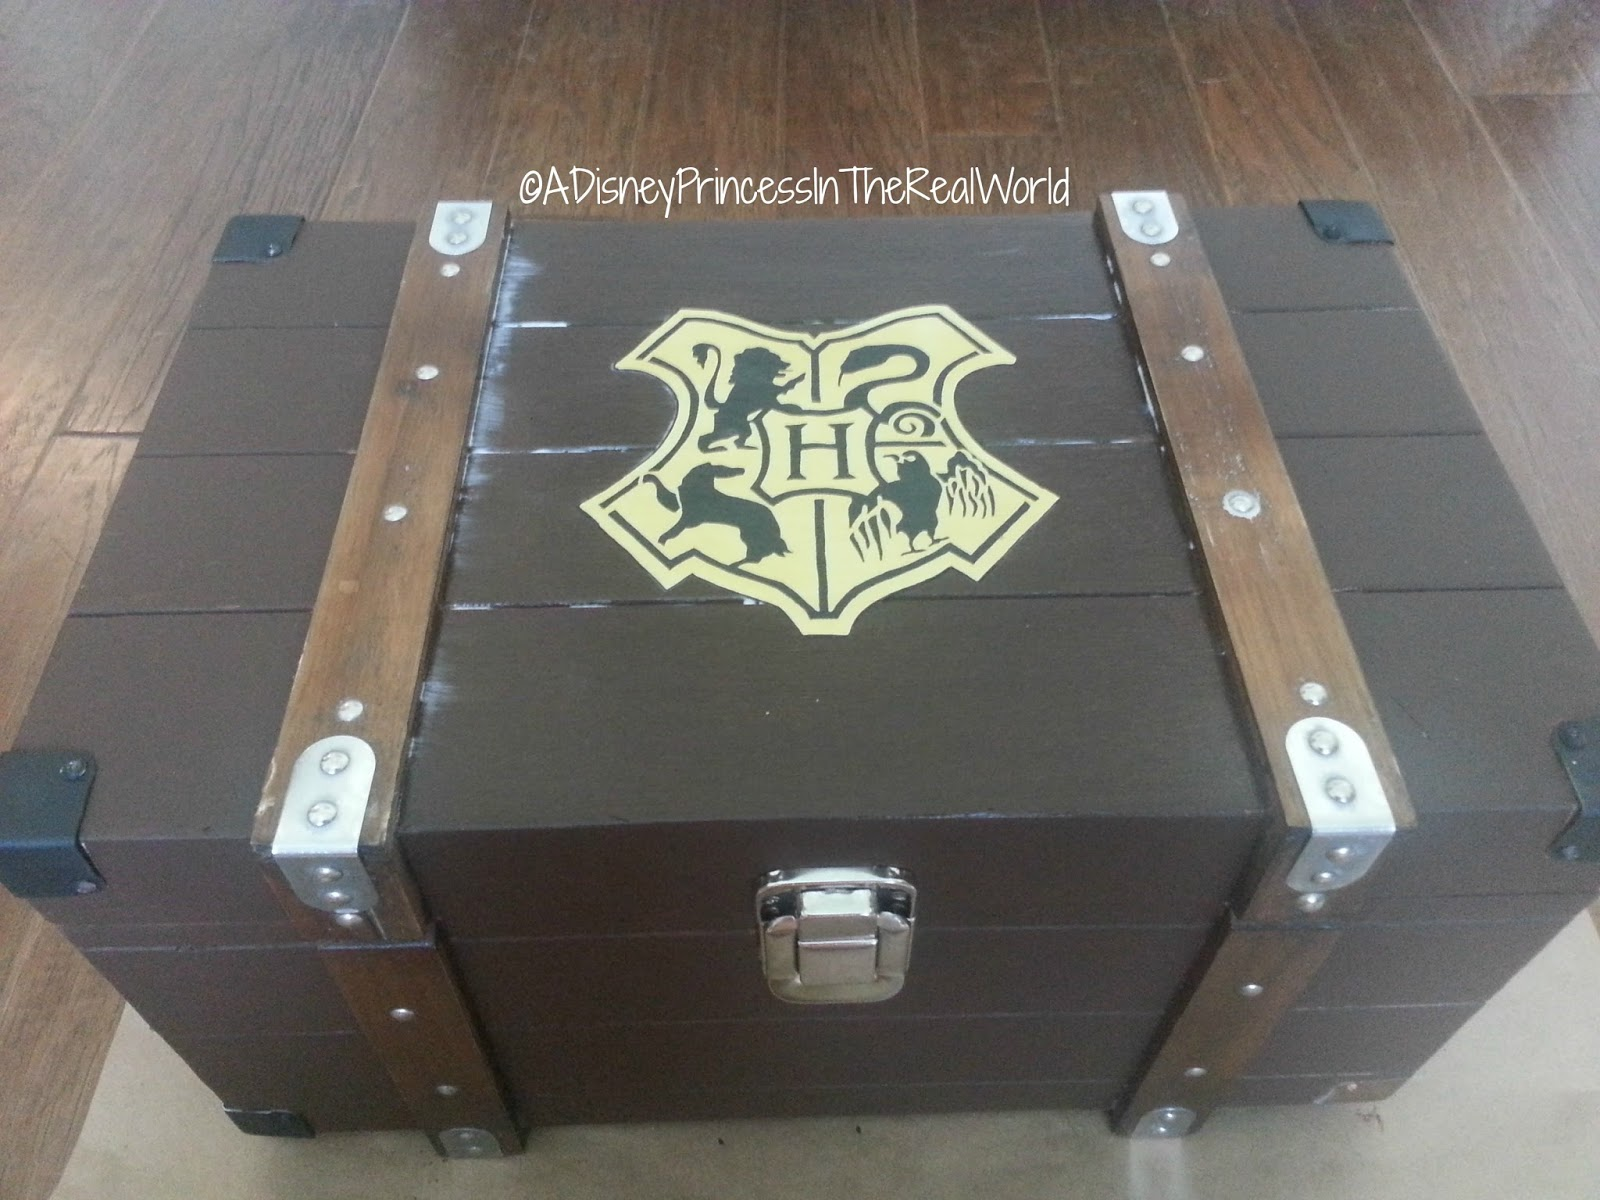 Harry Potter Book Trunk : A disney princess in the real world diy harry potter trunk